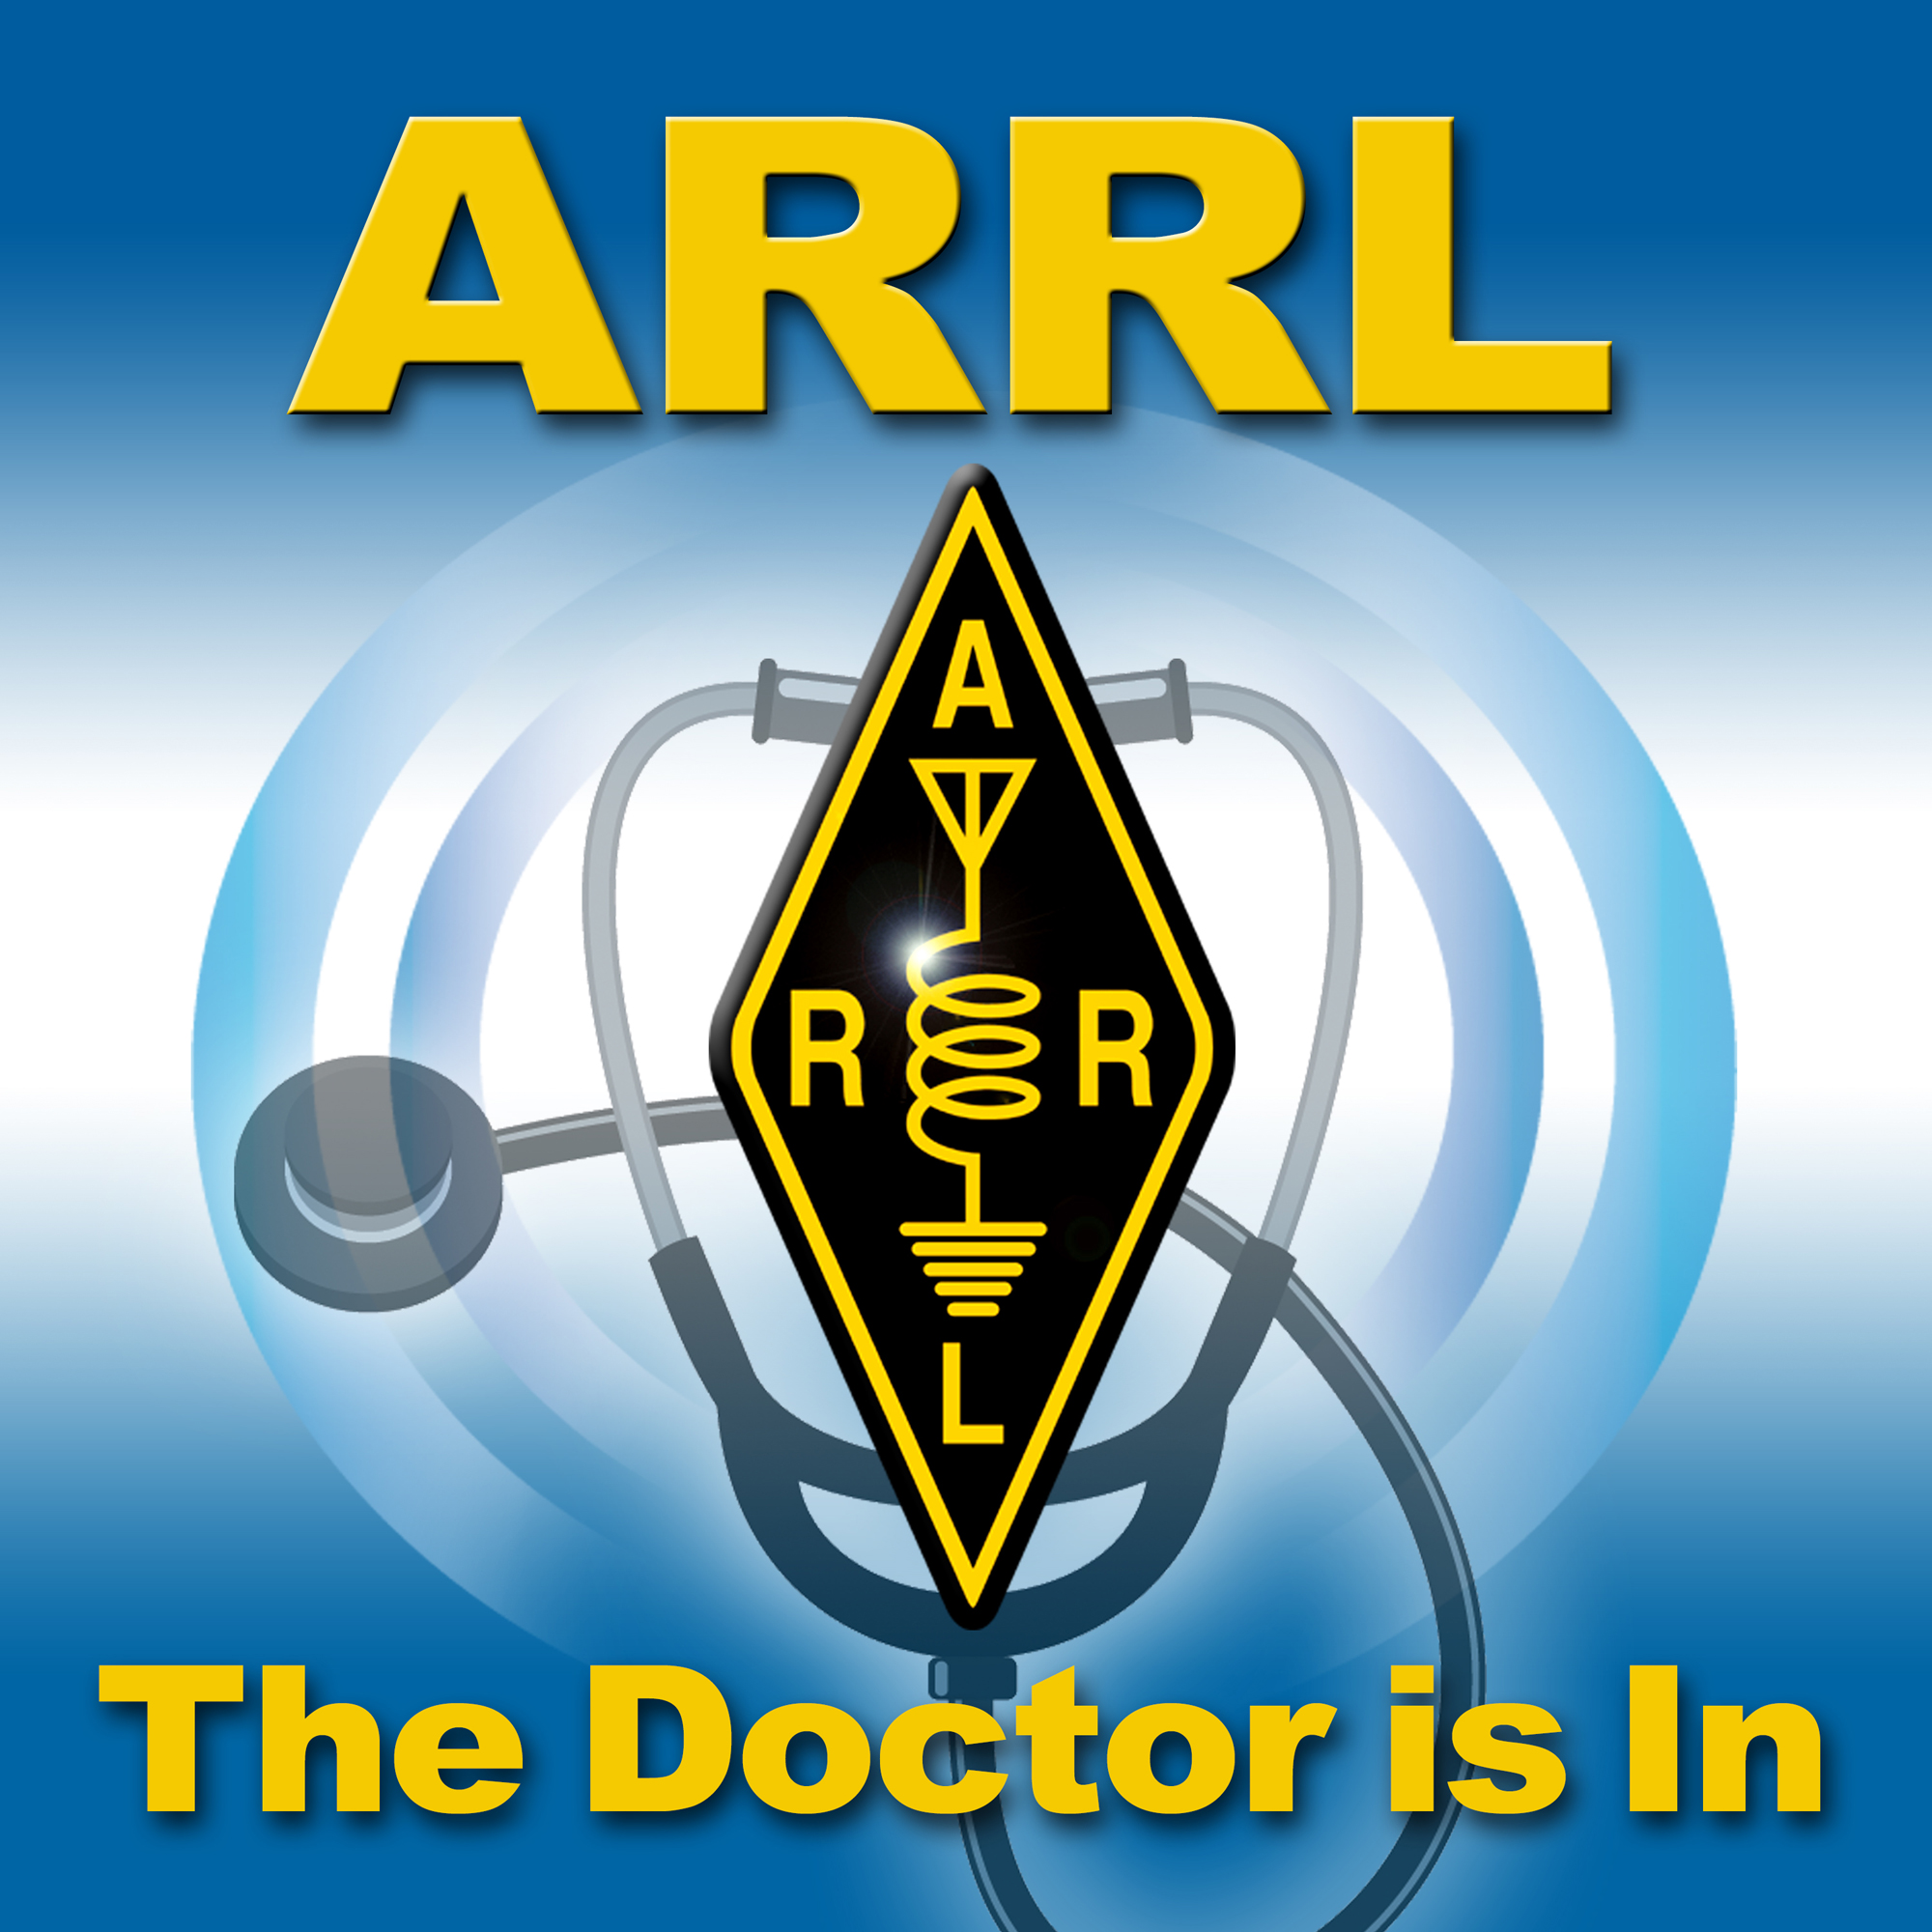 ARRL The Doctor is In